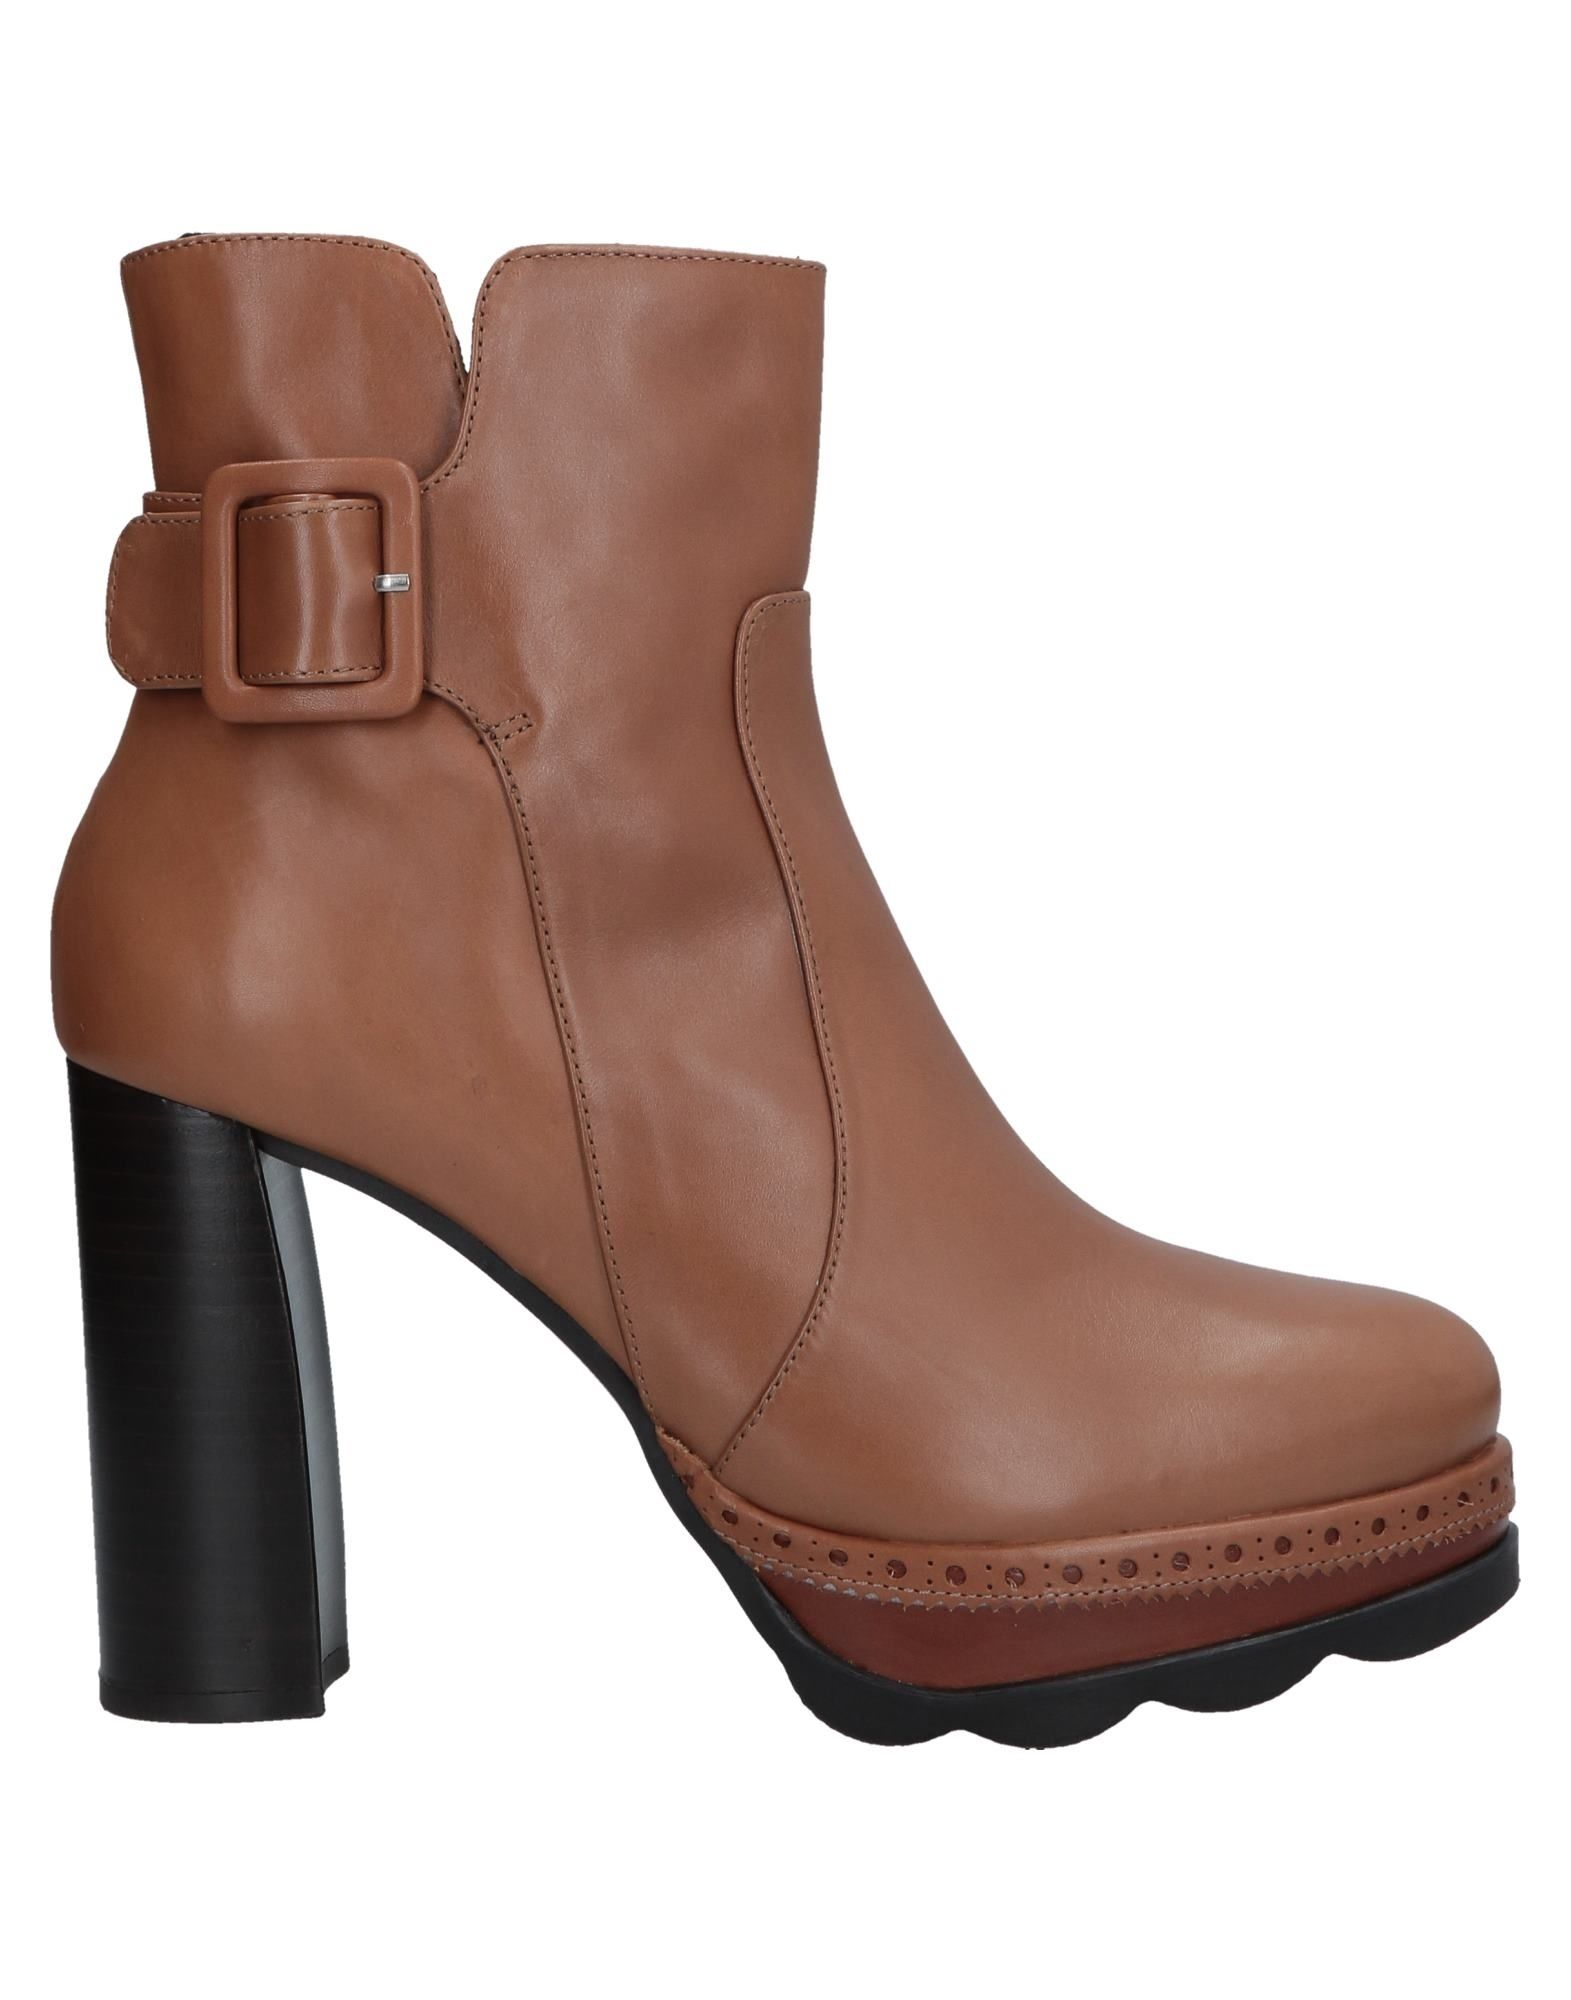 Pons Quintana Pons Ankle Boot - Women Pons Quintana Quintana Ankle Boots online on  United Kingdom - 11556317SS db419a